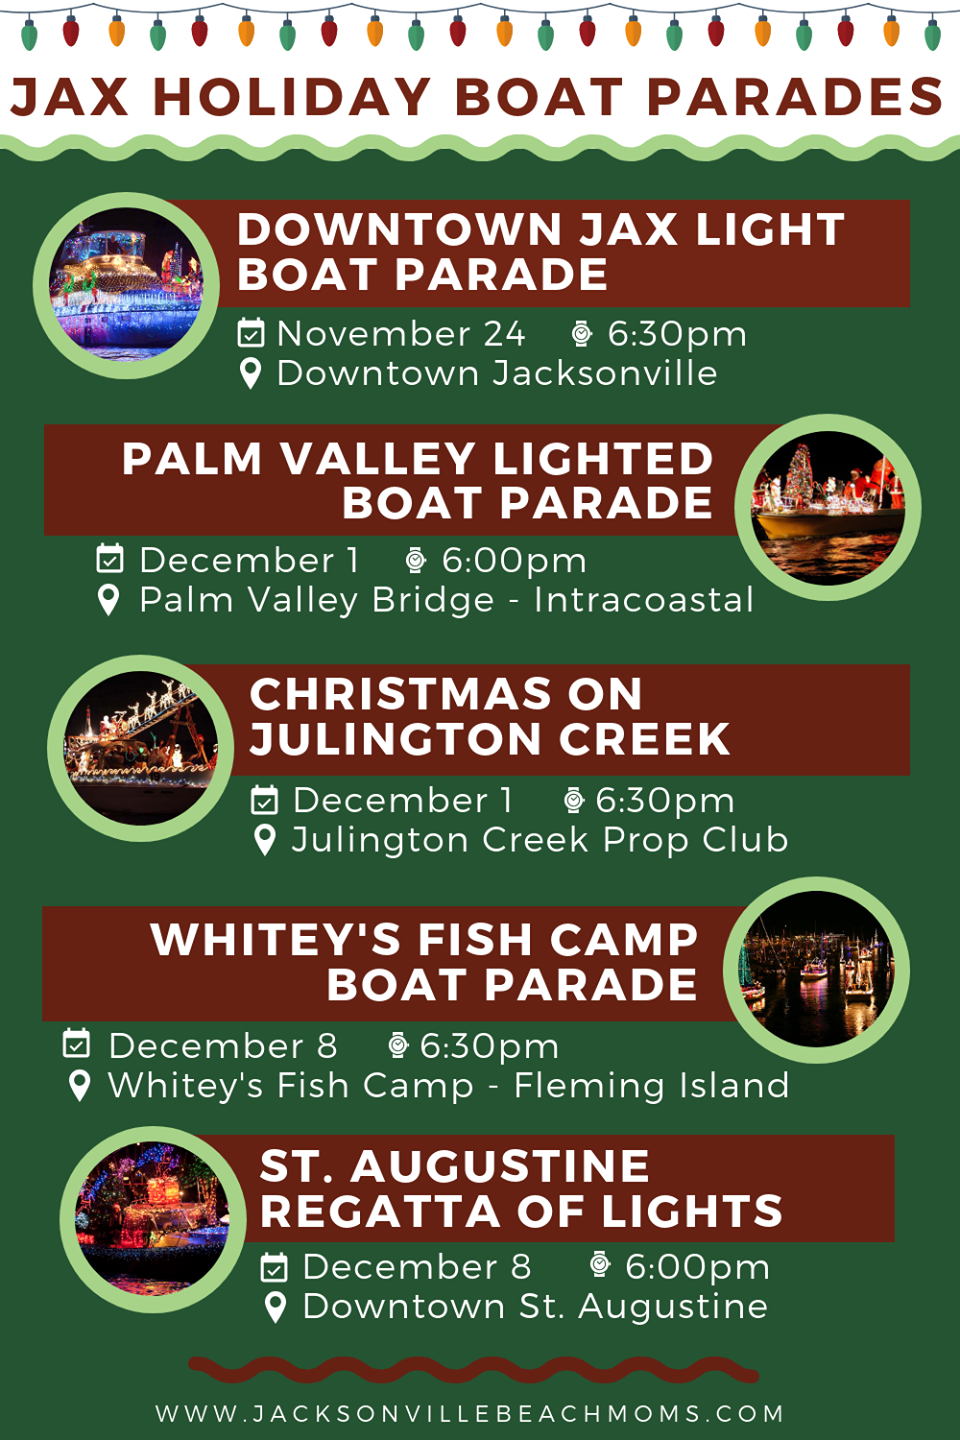 St Augustine Christmas Boat Parade 2019 Christmas & Holiday Light Boat Parades in Jacksonville, Florida